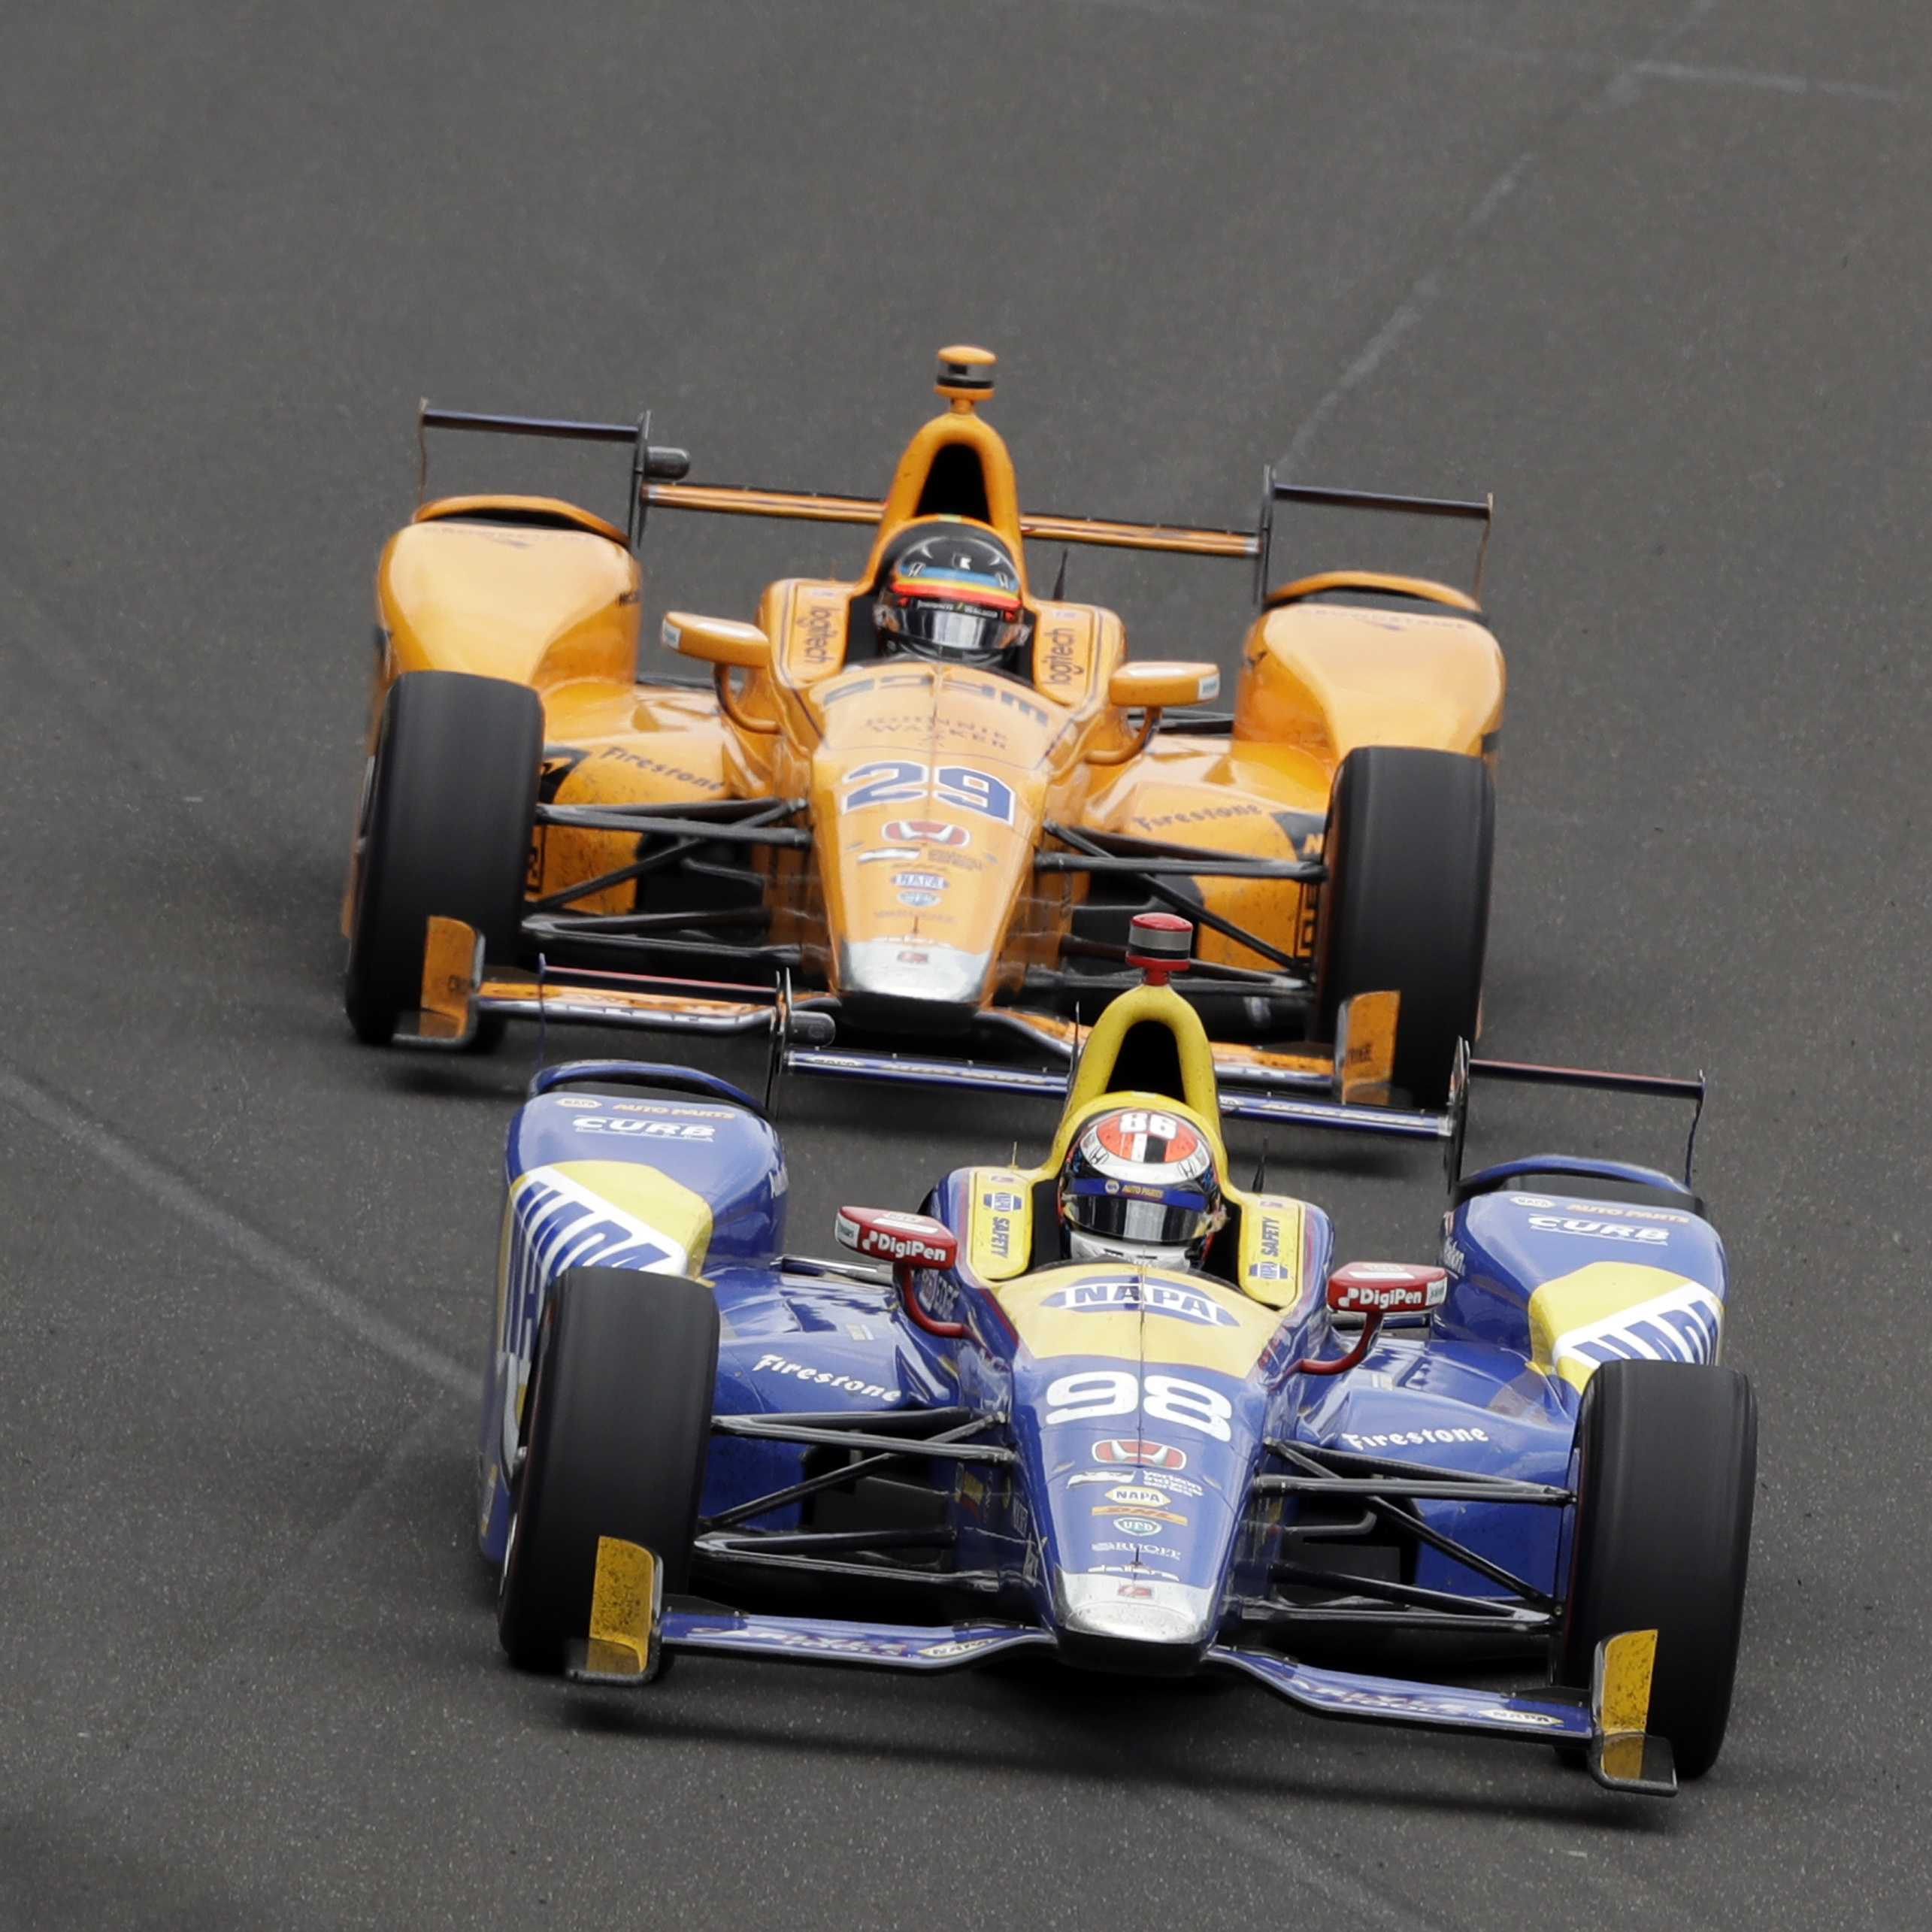 Alexander Rossi leads Fernando Alonso, of Spain, into the first turn during the running of the Indianapolis 500 auto race at Indianapolis Motor Speedway, Sunday, May 28, 2017, in Indianapolis.